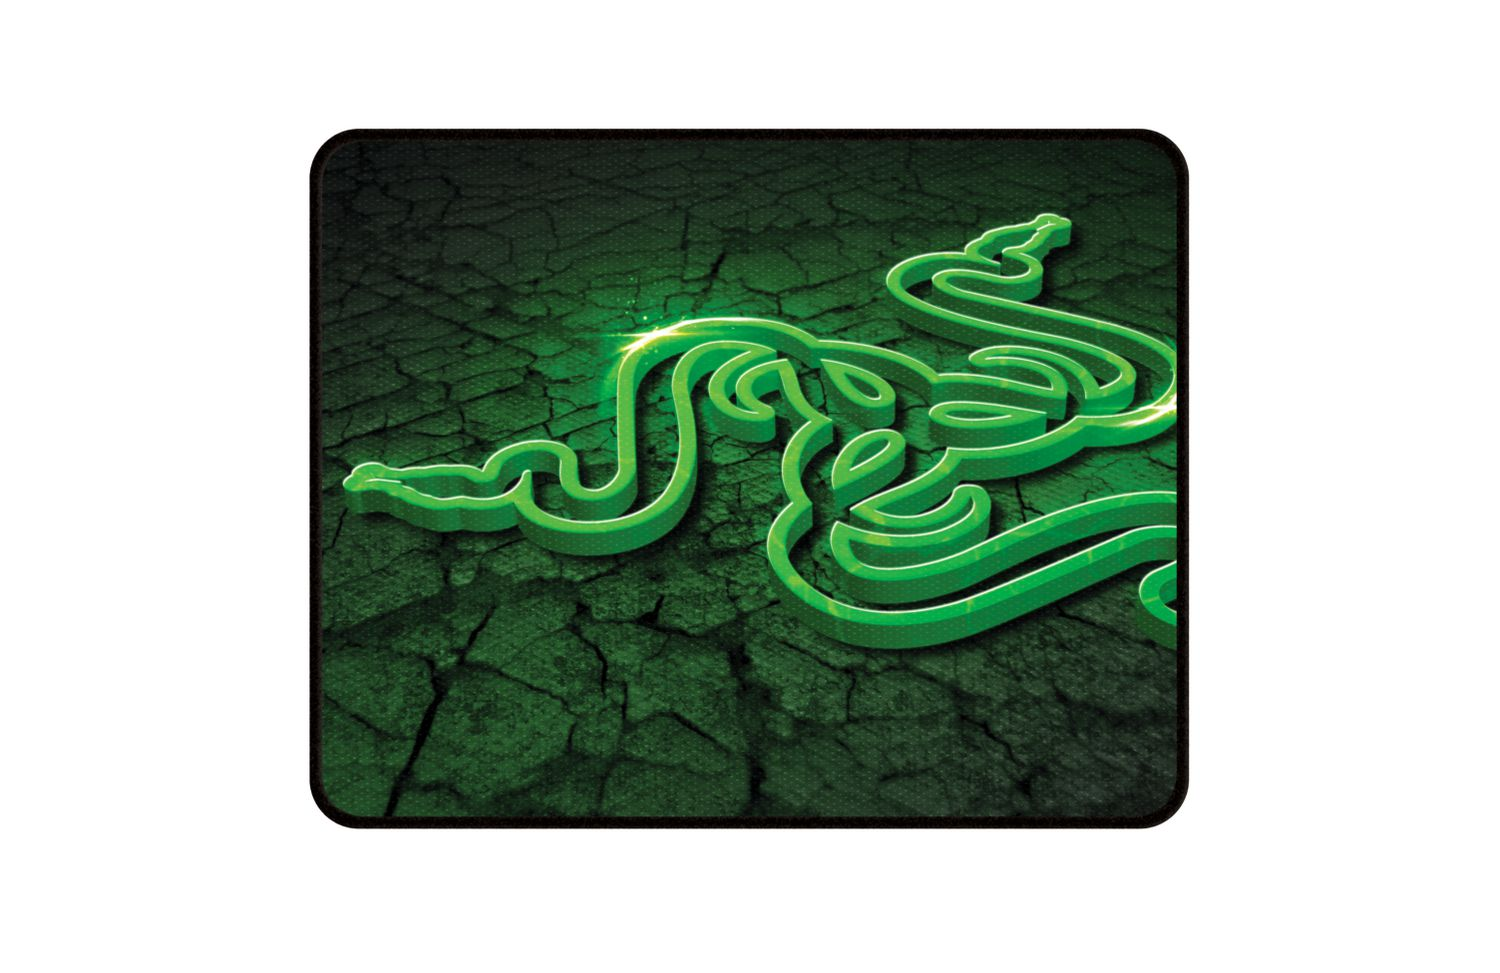 1f1d922000e Razer Goliathus Control Fissure Edition Soft Gaming Mouse Mat - Small -  image 1 of 3 zoomed image